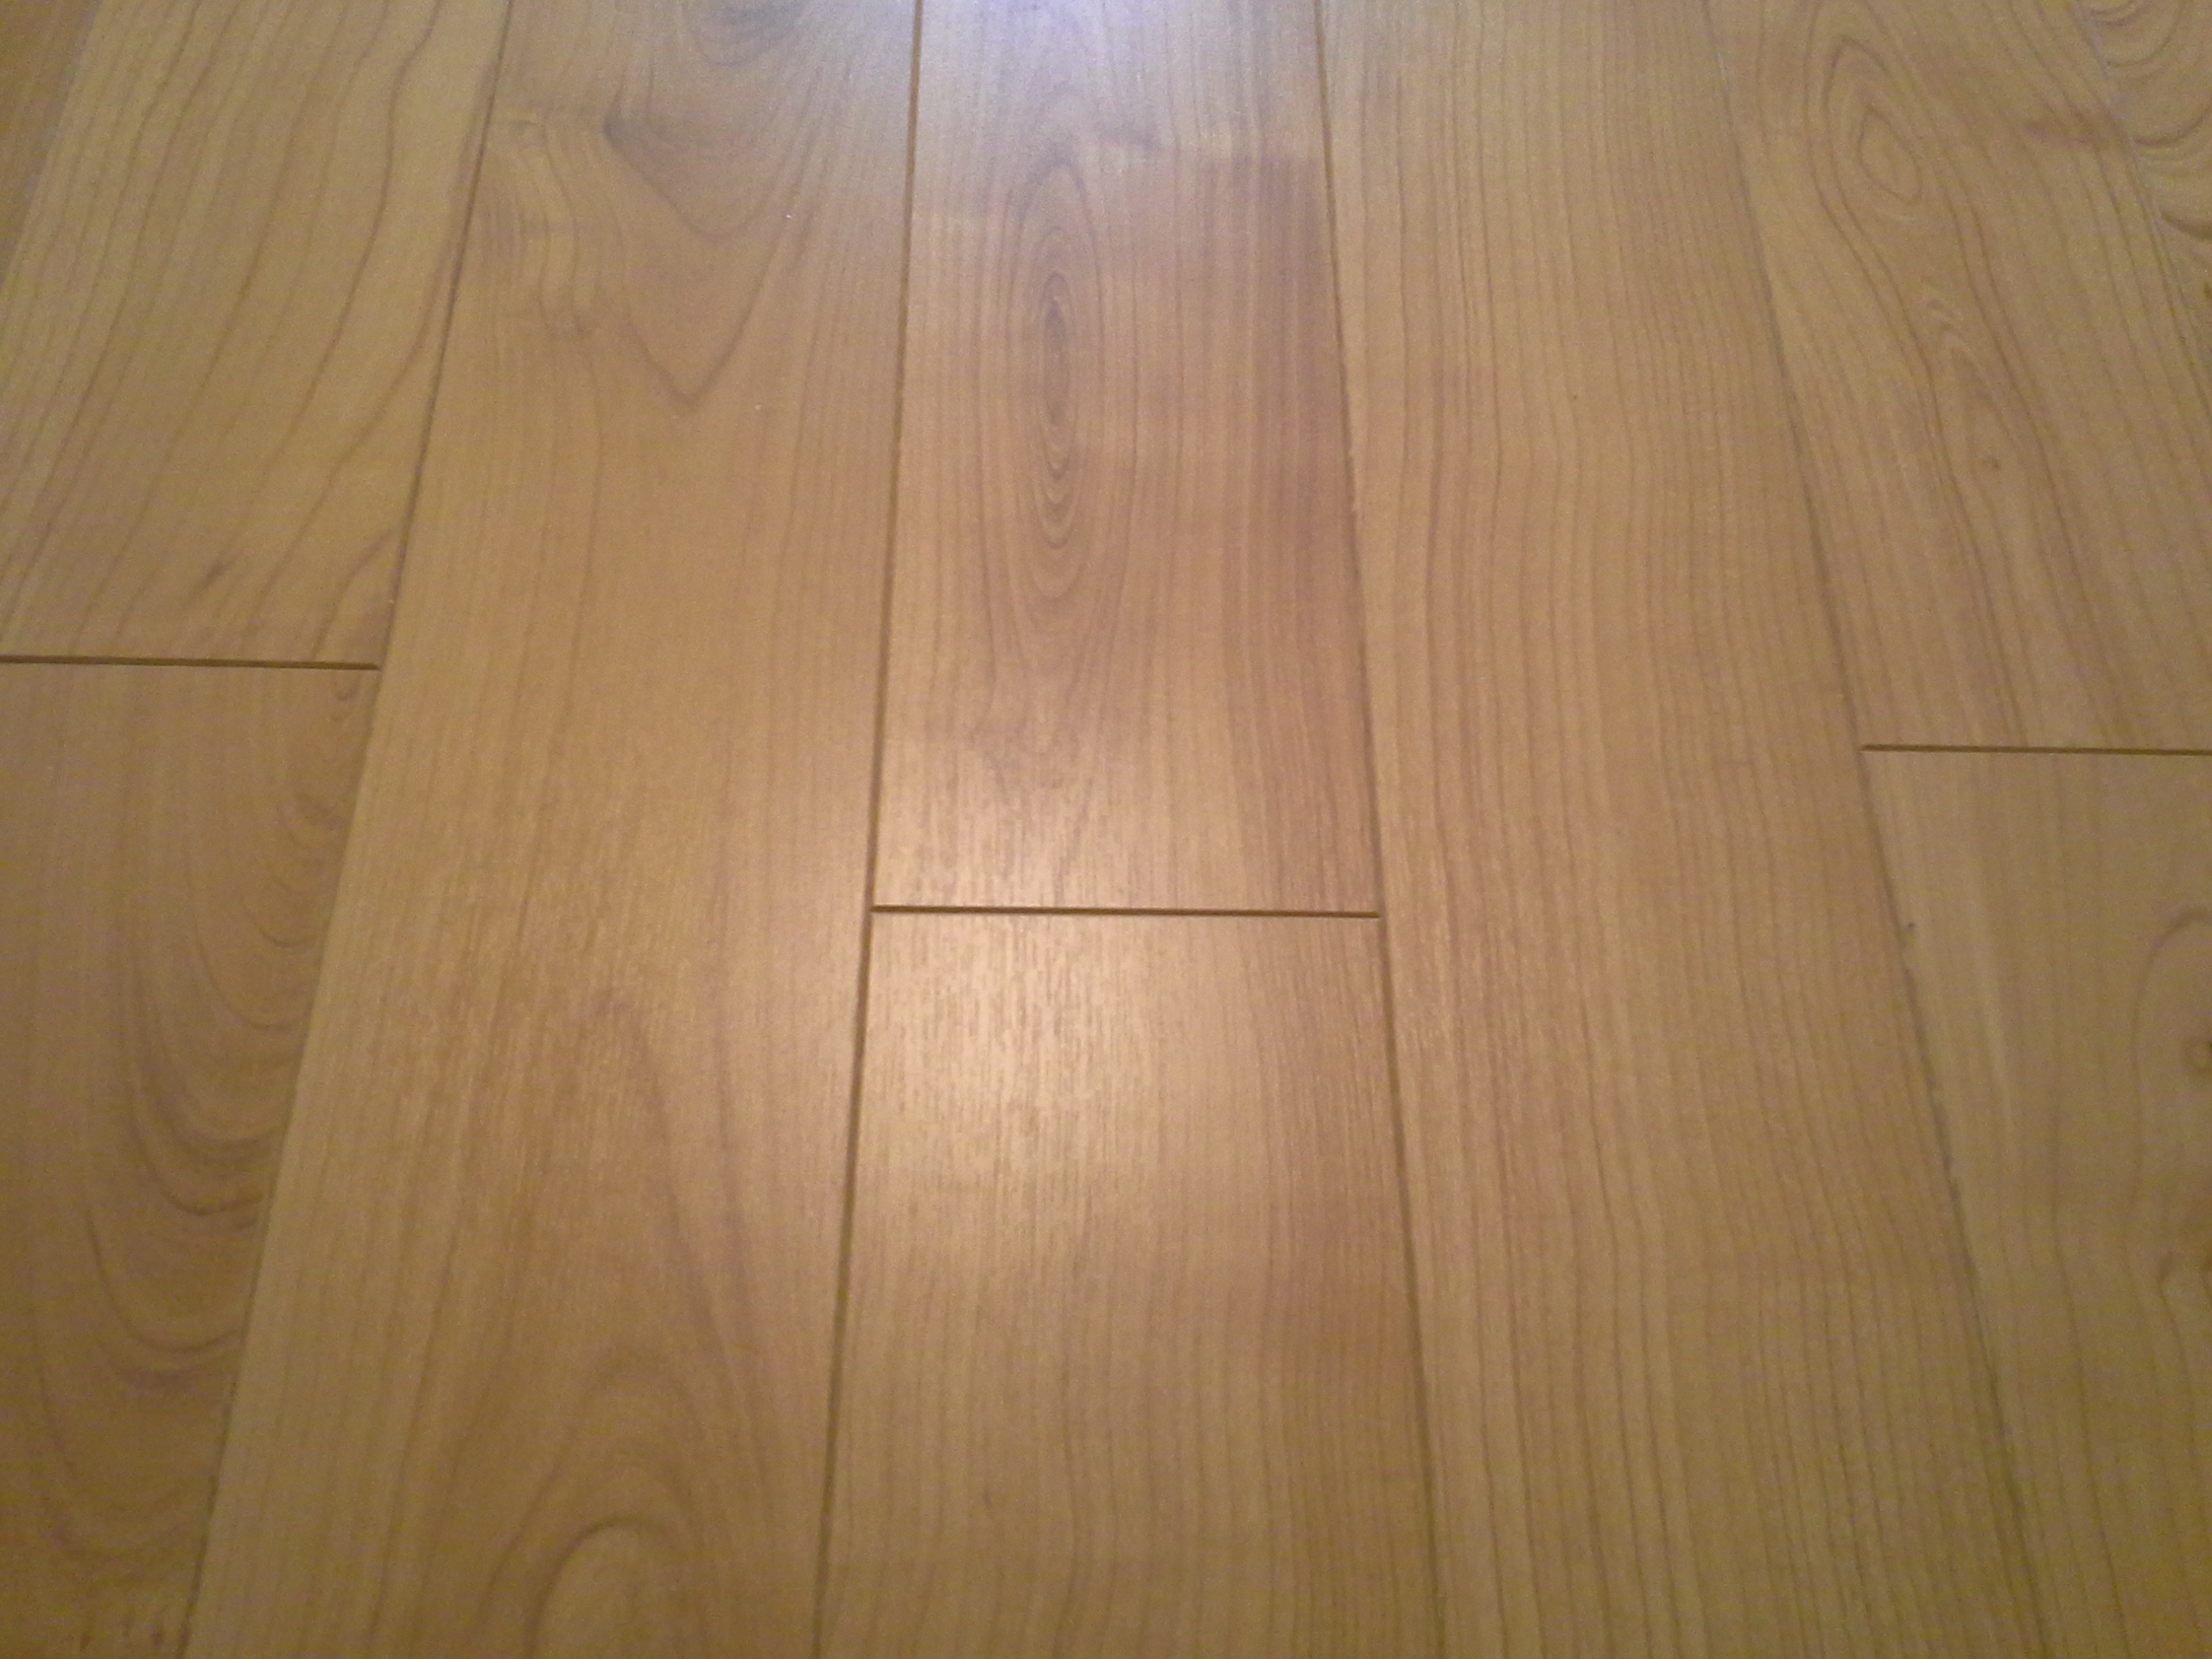 A laminated floor i installed recently.